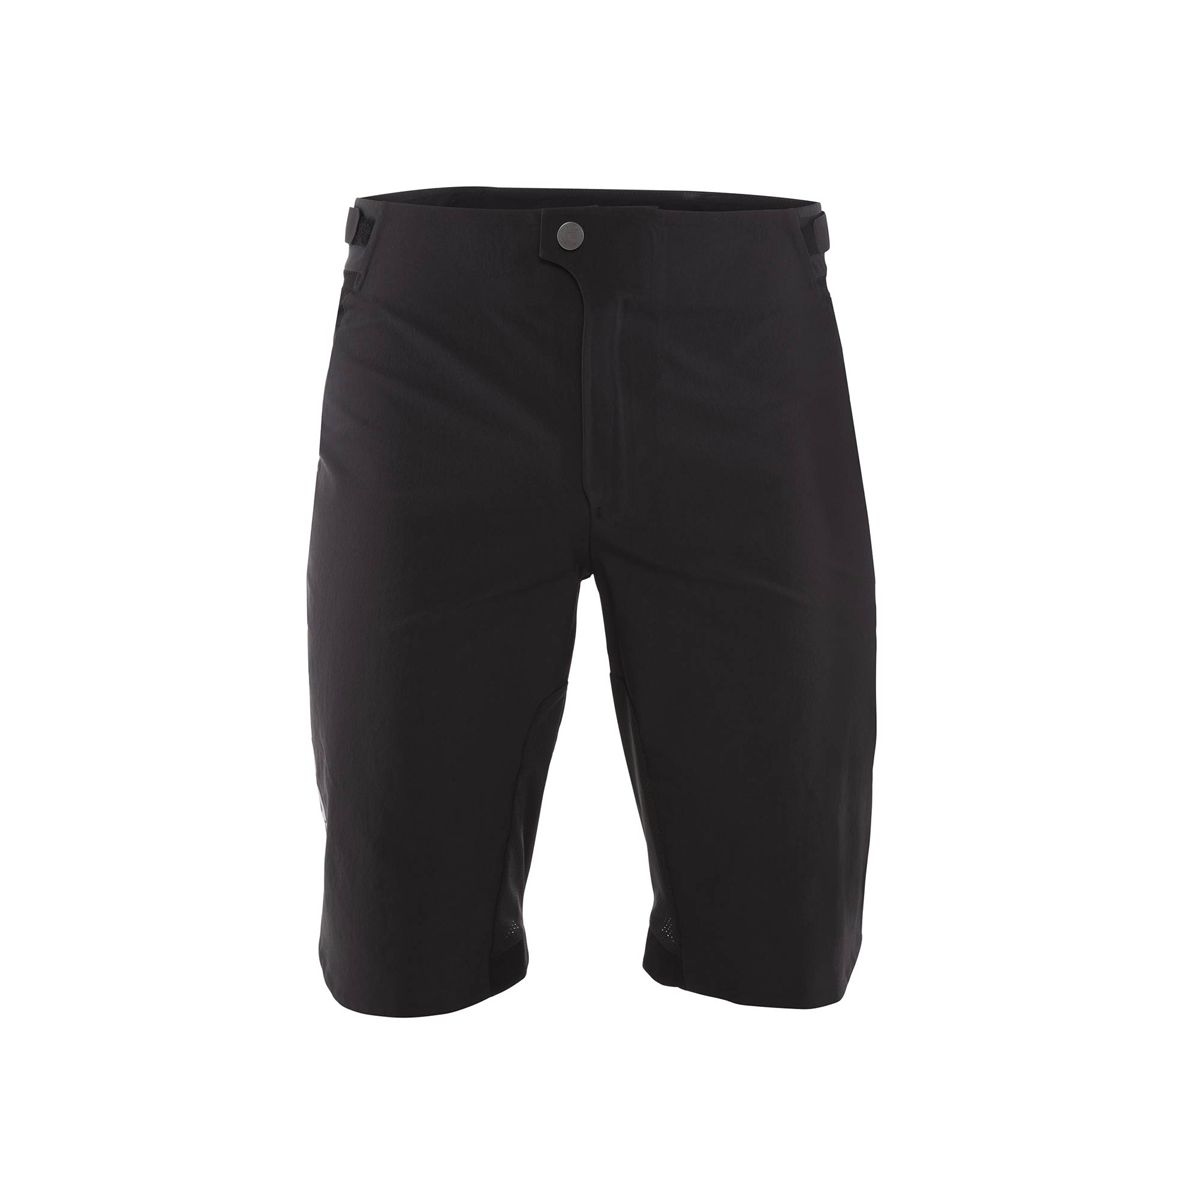 Essential XC shorts